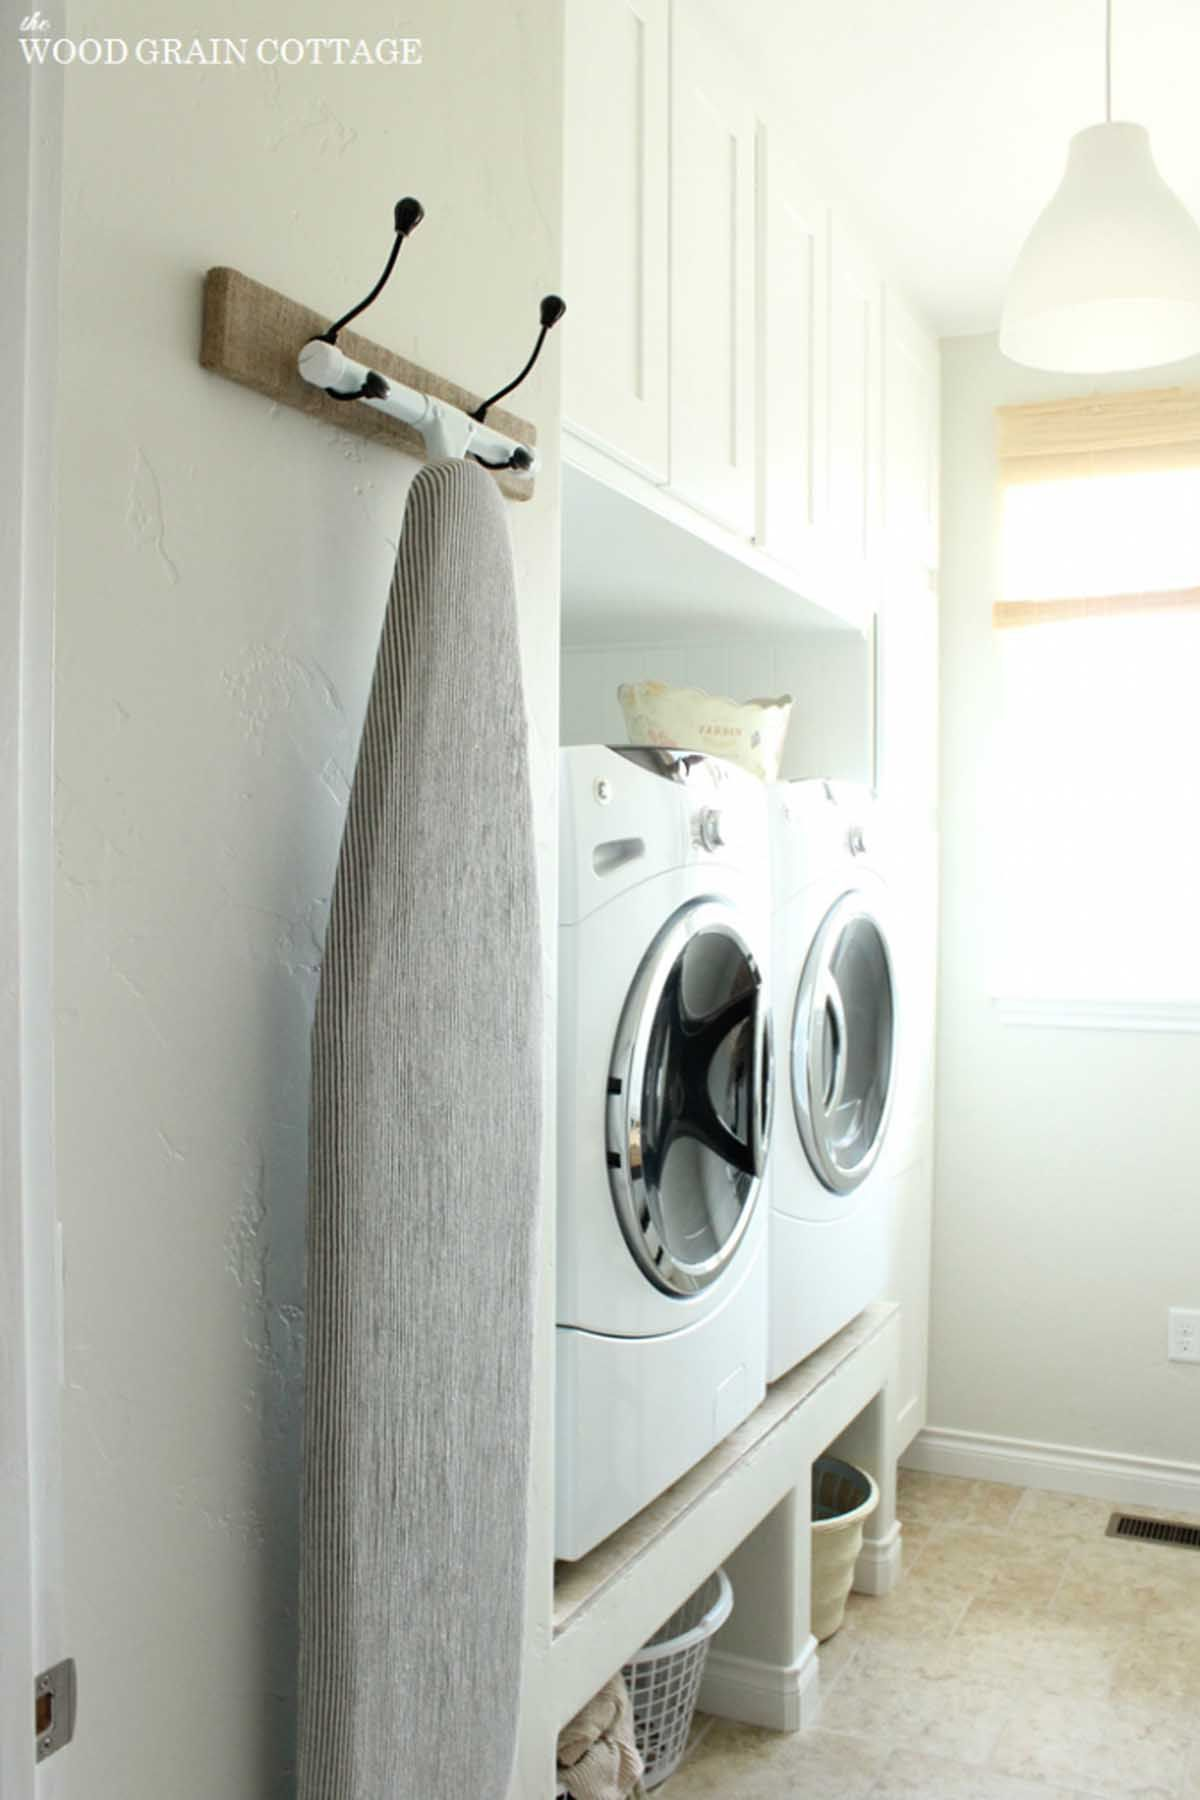 15 Laundry Room Storage And Organization Ideas How To Organize Your